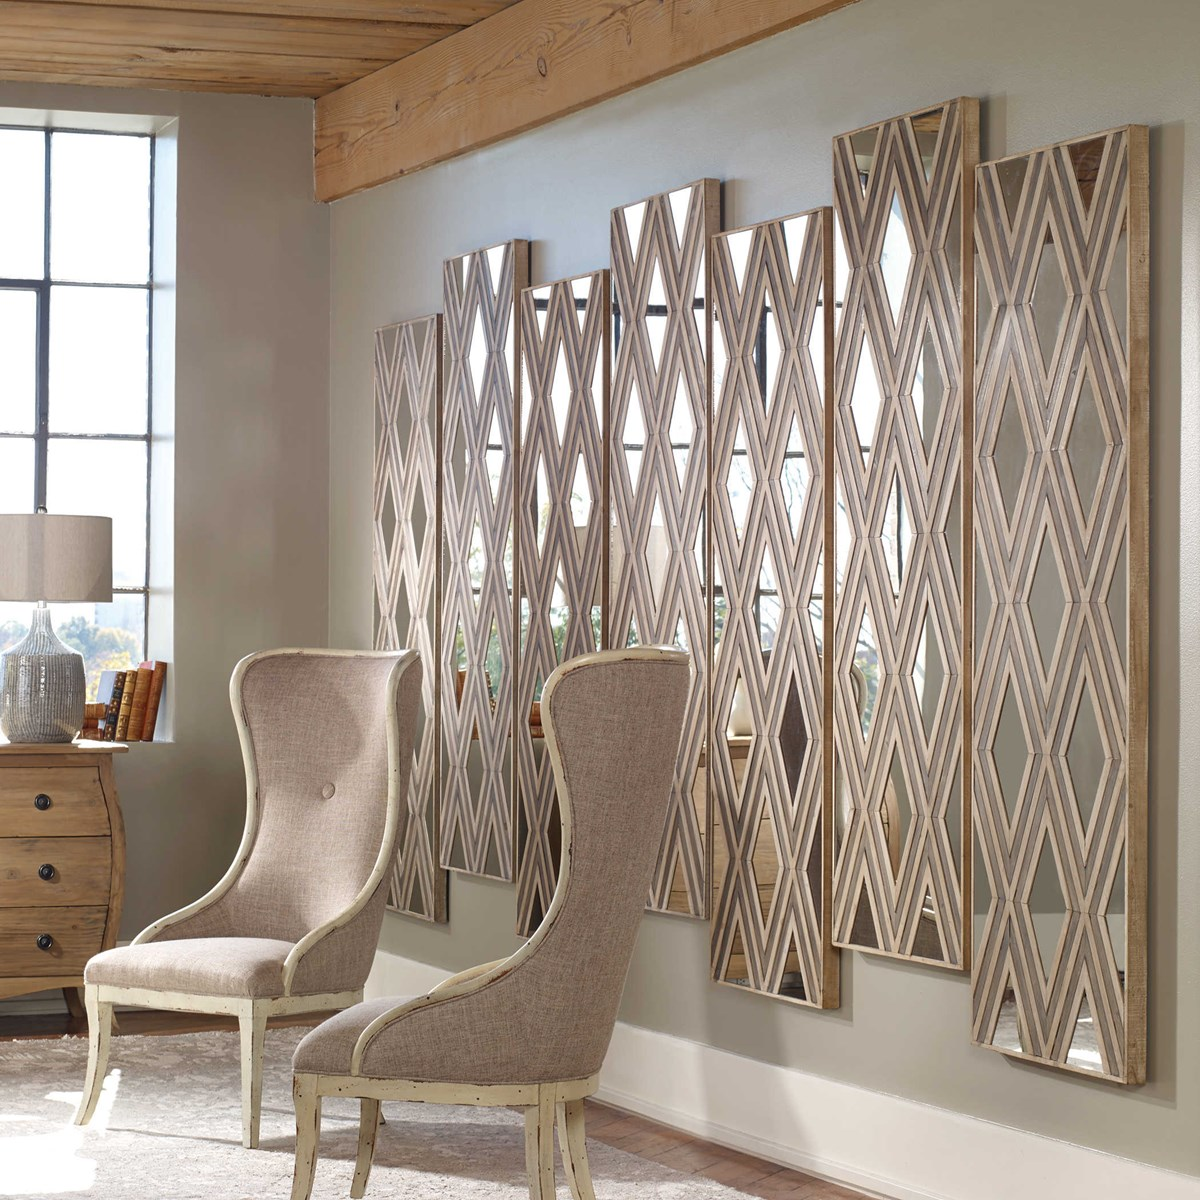 Tahira Wood Wall Decor, Rectangle | Uttermost